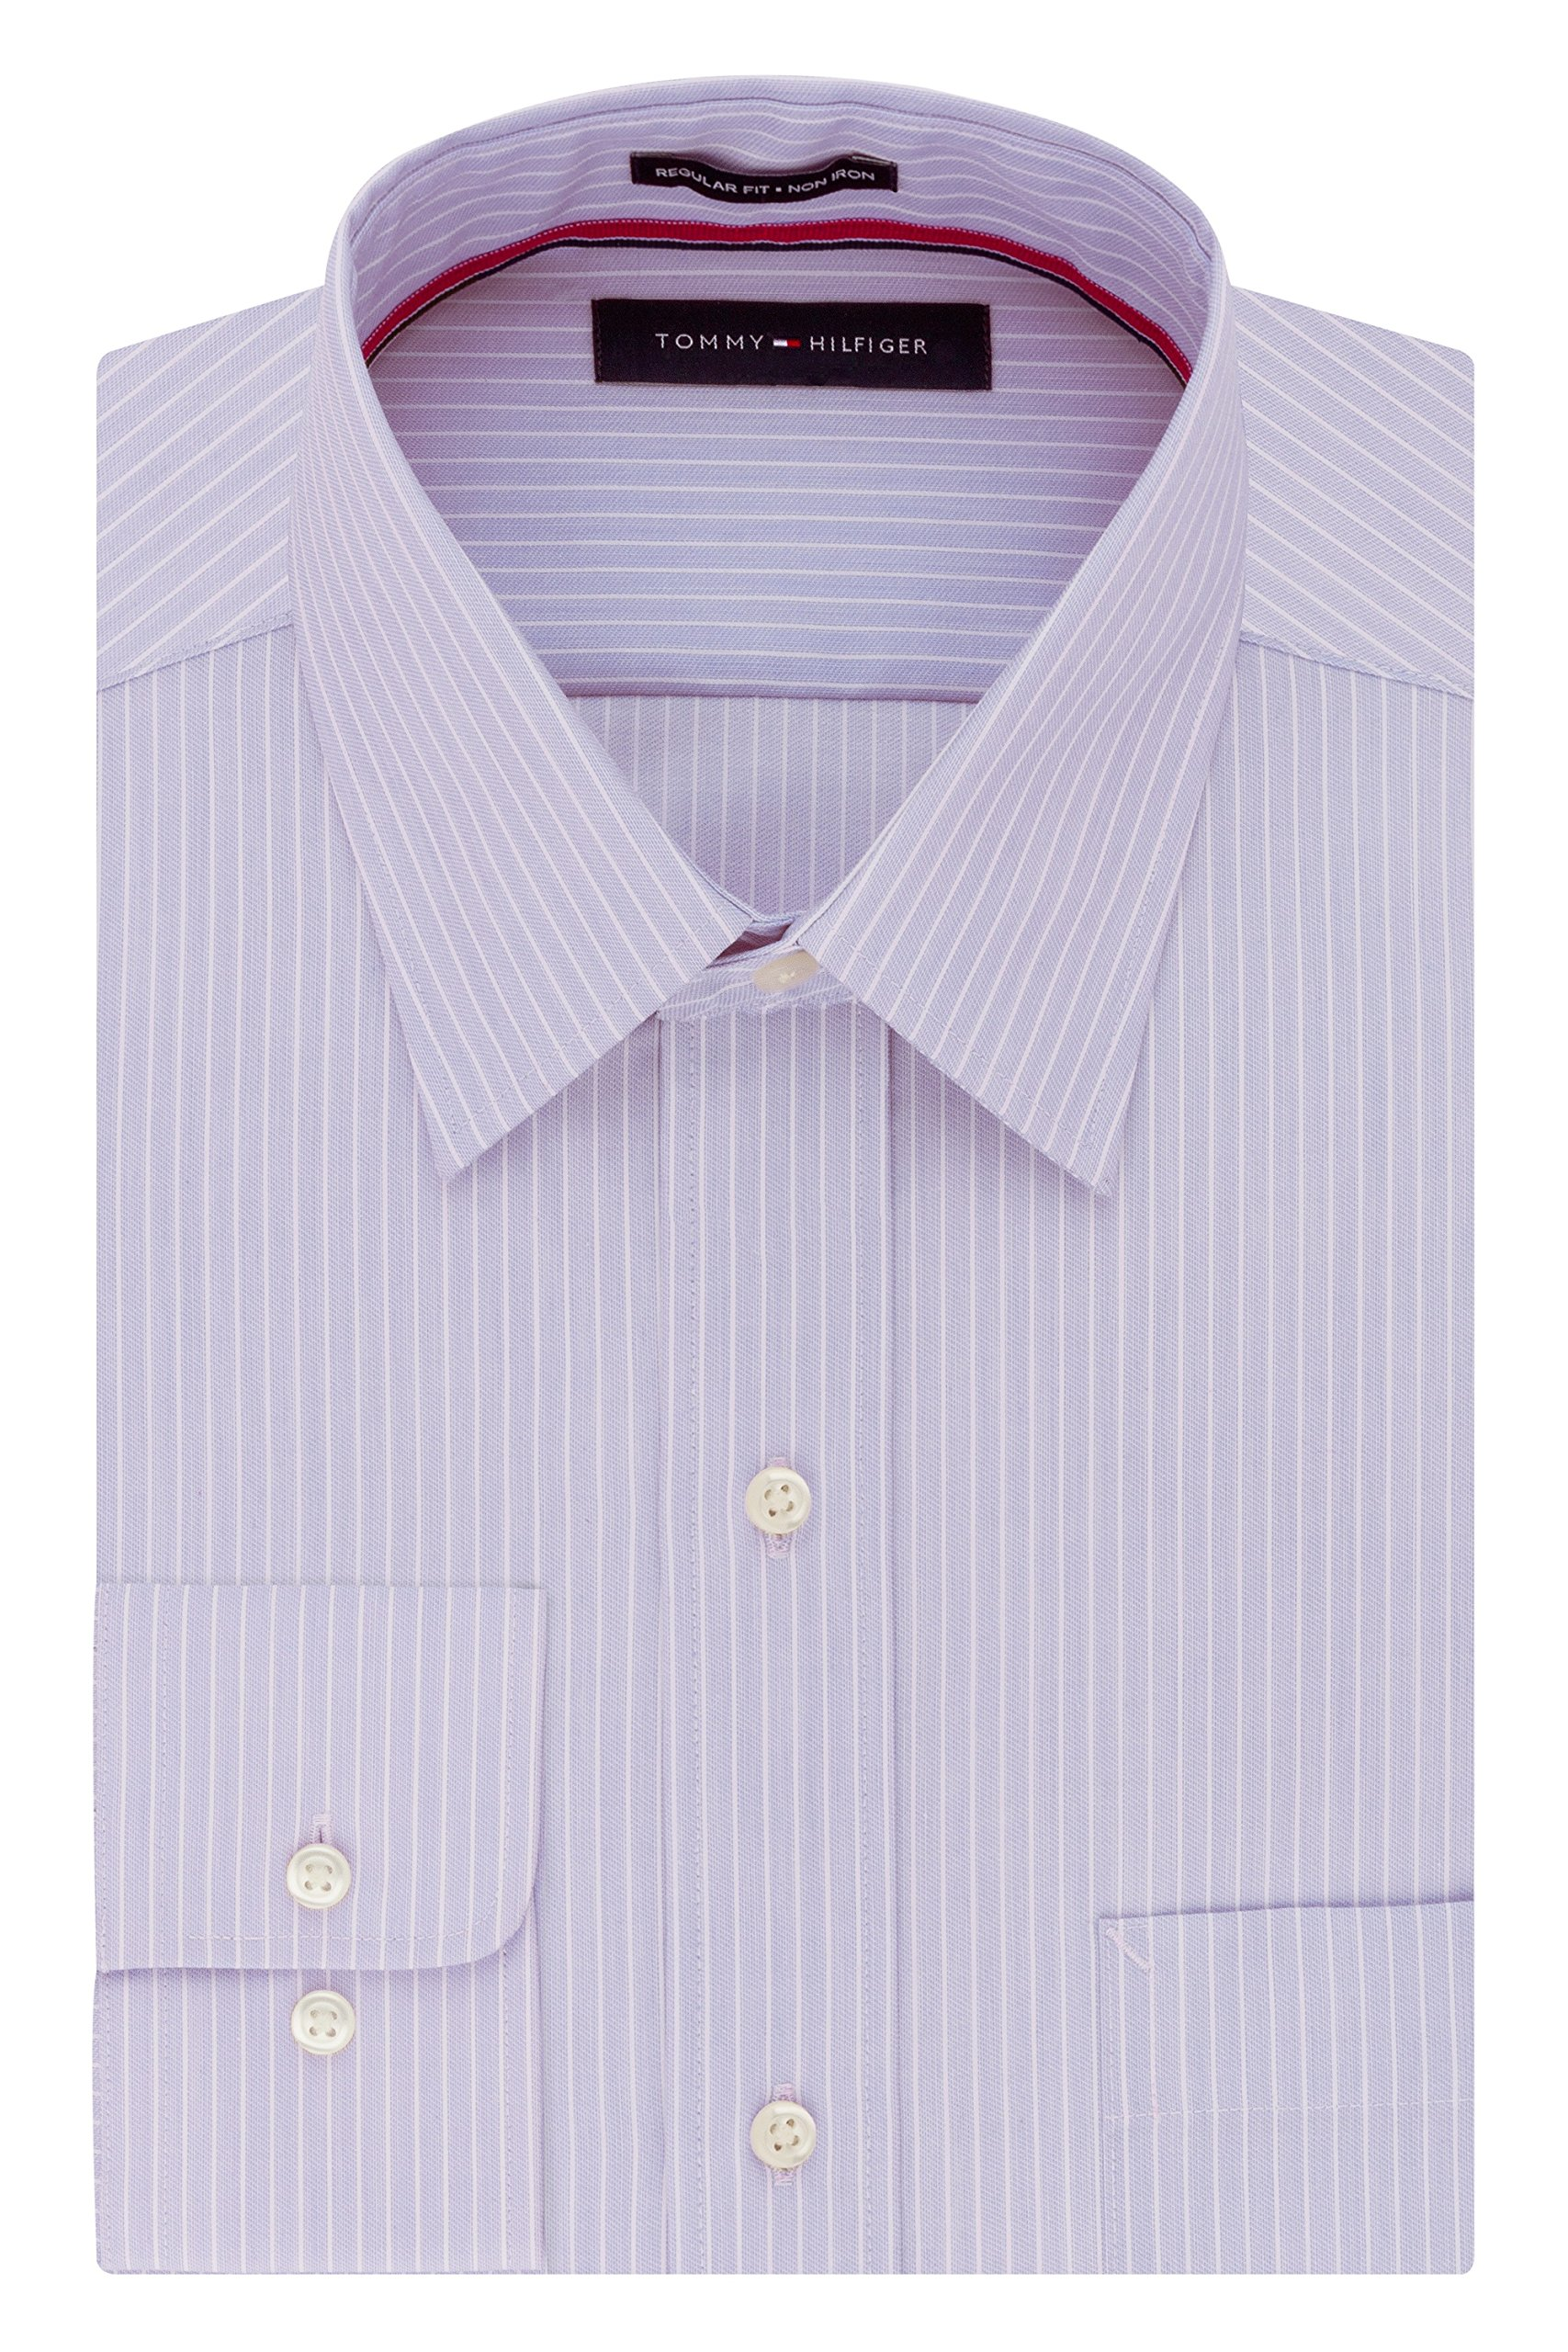 Tommy Hilfiger Men's Pinpoint Regular Fit Solid Button Down Collar Dress Shirt, 15'' Neck 34''-35'' Sleeve, Wild Orchid by Tommy Hilfiger